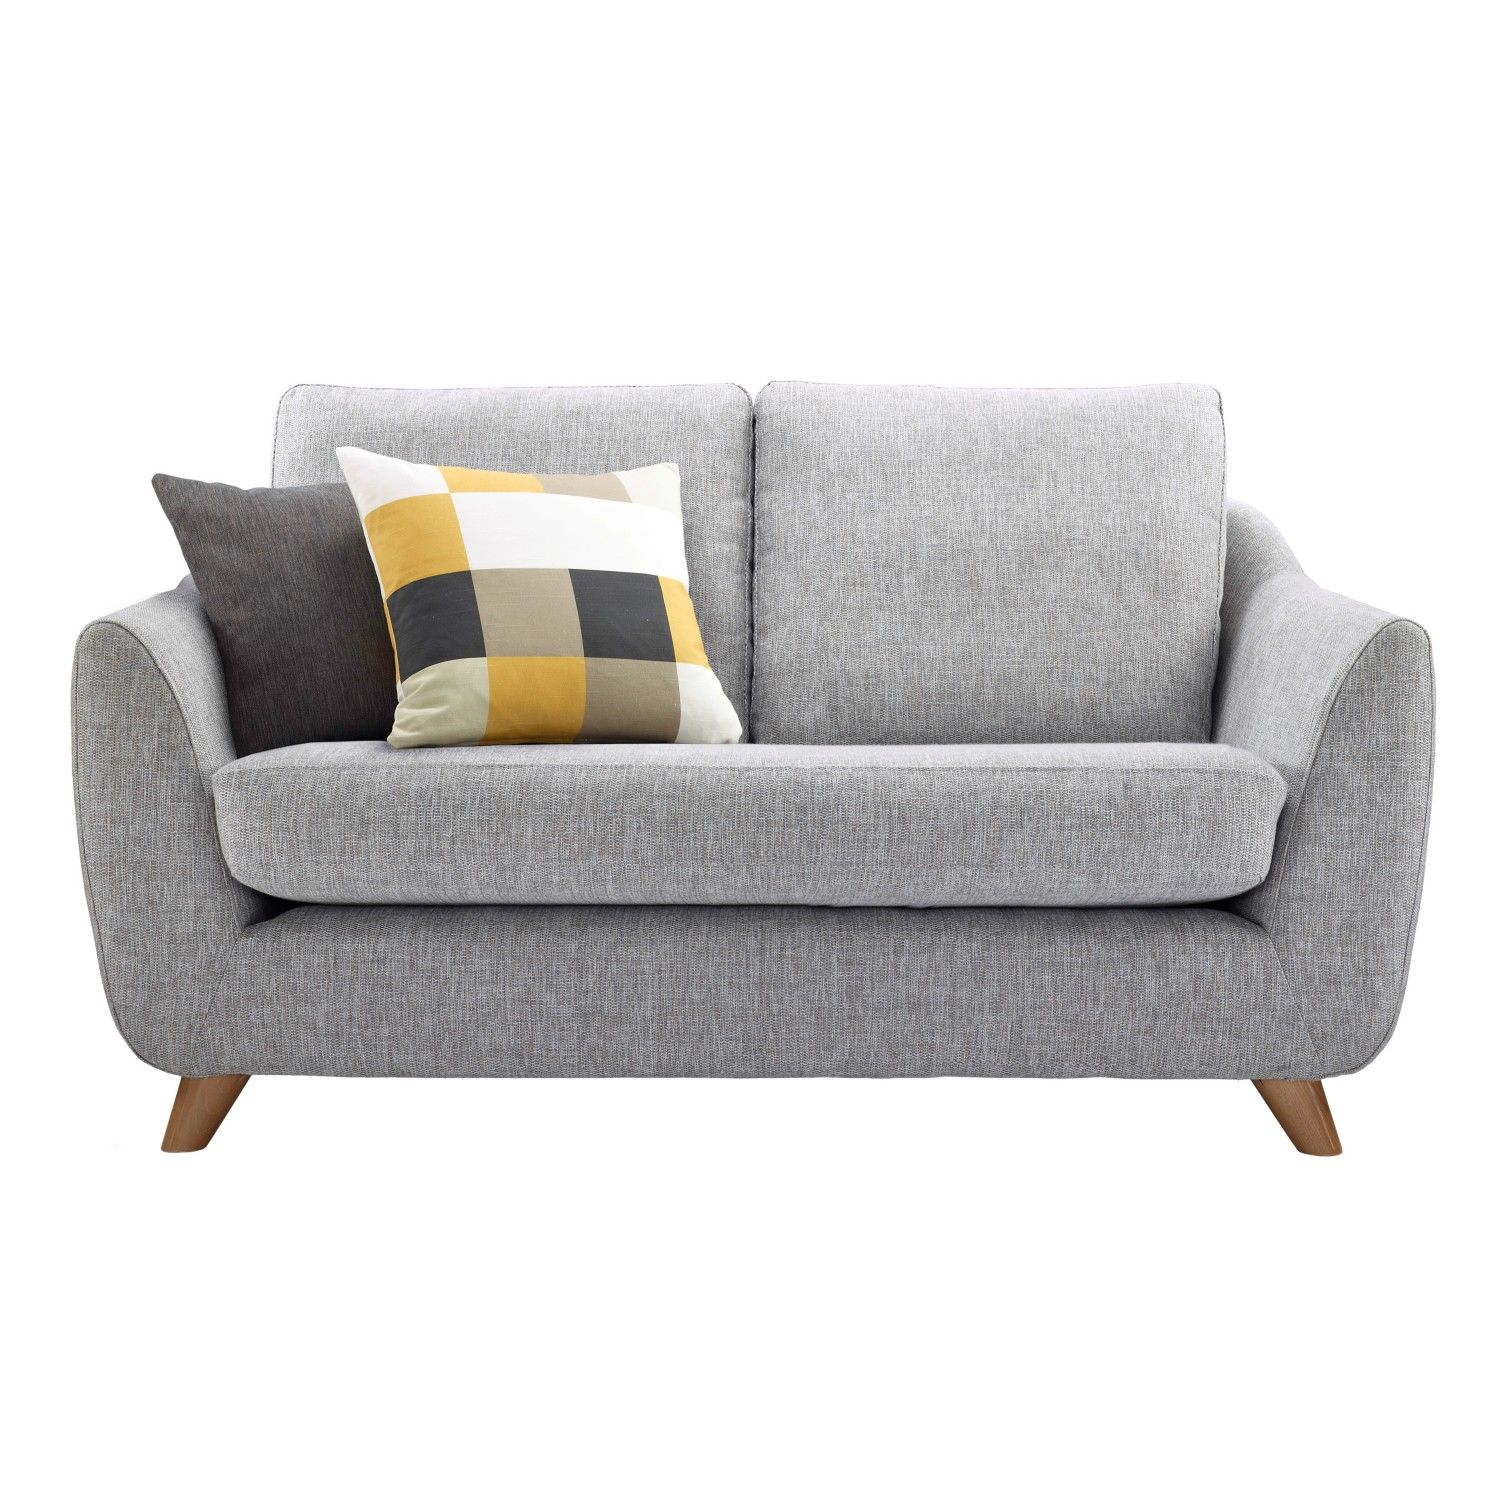 sofas for small es ashley axiom leather sofa set loveseats spaces cheap decoration fascinating grey legged